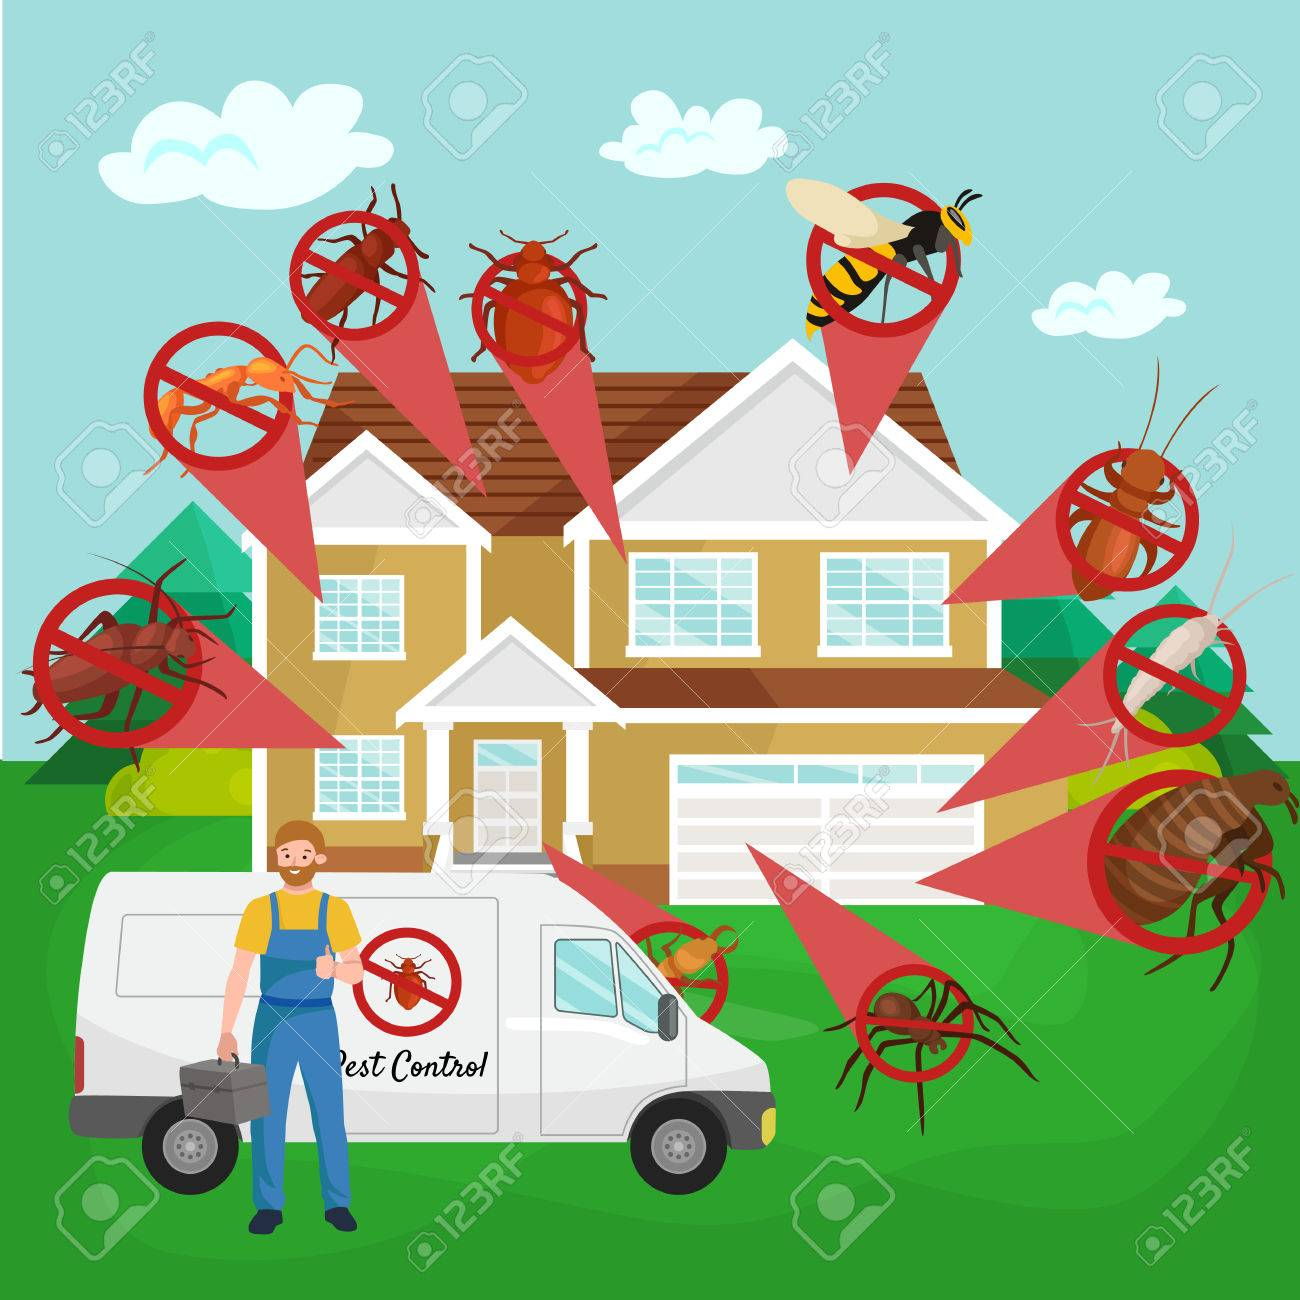 Pest control concept with insects exterminator silhouette flat vector illustration set - 58197184